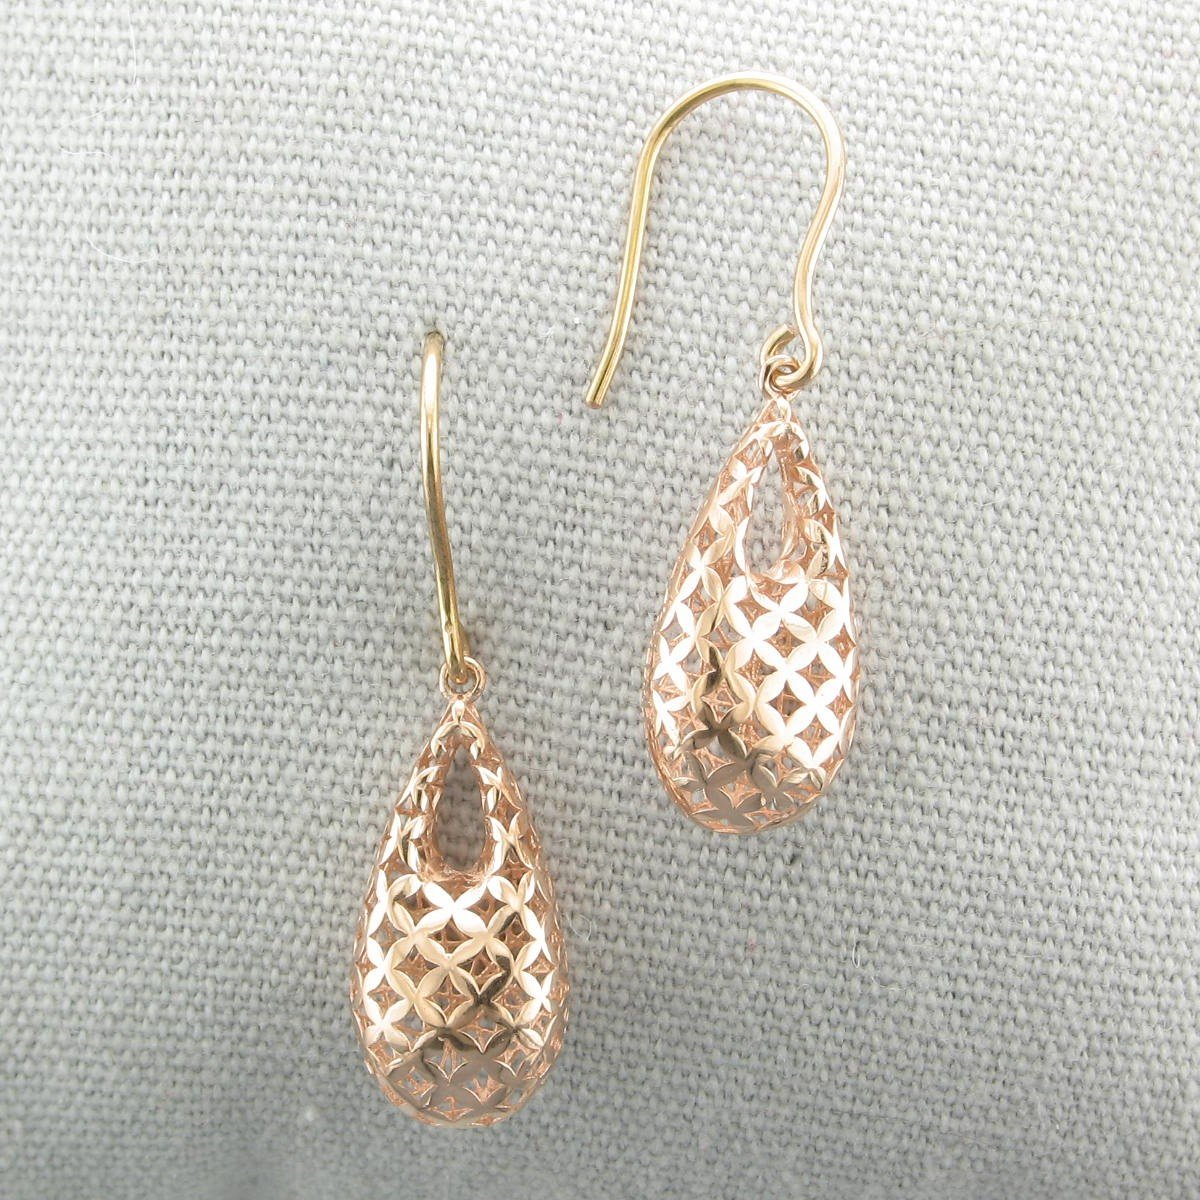 14K Rose Gold 3-D Open Teardrop Earrings